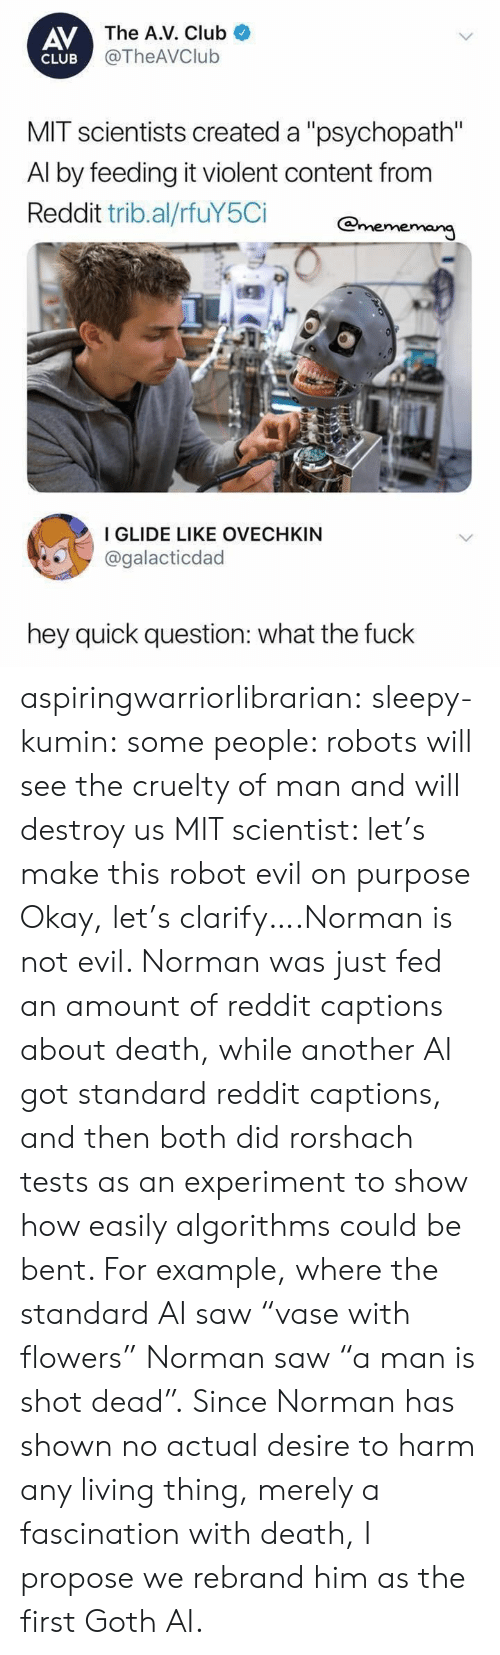 """Norman: AV  The A.V. Club  @TheAVClub  CLUB  MIT scientists created a """"psychopath  Al by feeding it violent content from  Reddit trib.al/rfuY5Ci Omeme  I GLIDE LIKE OVECHKIN  @galacticdad  hey quick question: what the fuck aspiringwarriorlibrarian: sleepy-kumin:  some people: robots will see the cruelty of man and will destroy us MIT scientist: let's make this robot evil on purpose  Okay, let's clarify….Norman is not evil. Norman was just fed an amount of reddit captions about death, while another AI got standard reddit captions, and then both did rorshach tests as an experiment to show how easily algorithms could be bent. For example, where the standard AI saw""""vase with flowers"""" Norman saw""""a man is shot dead"""". Since Norman has shown no actual desire to harm any living thing, merely a fascination with death, I propose we rebrand him as the first Goth AI."""